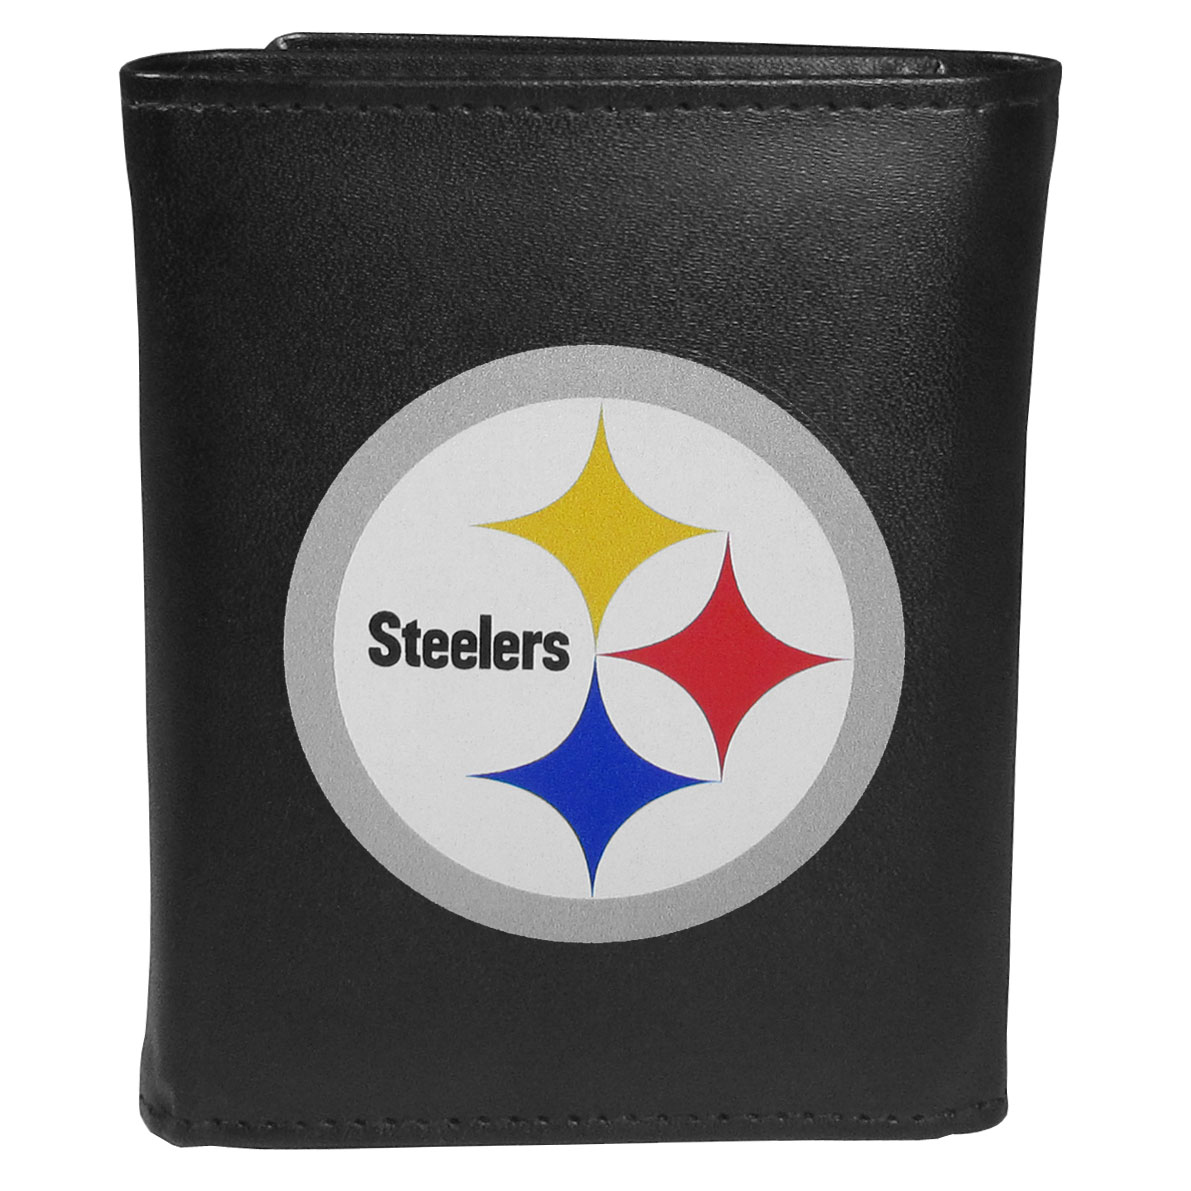 Pittsburgh Steelers Tri-fold Wallet Large Logo - Sports fans do not have to sacrifice style with this classic tri-fold wallet that sports thePittsburgh Steelers?extra large logo. This men's fashion accessory has a leather grain look and expert craftmanship for a quality wallet at a great price. The wallet features inner credit card slots, windowed ID slot and a large billfold pocket. The front of the wallet features an extra large printed team logo.